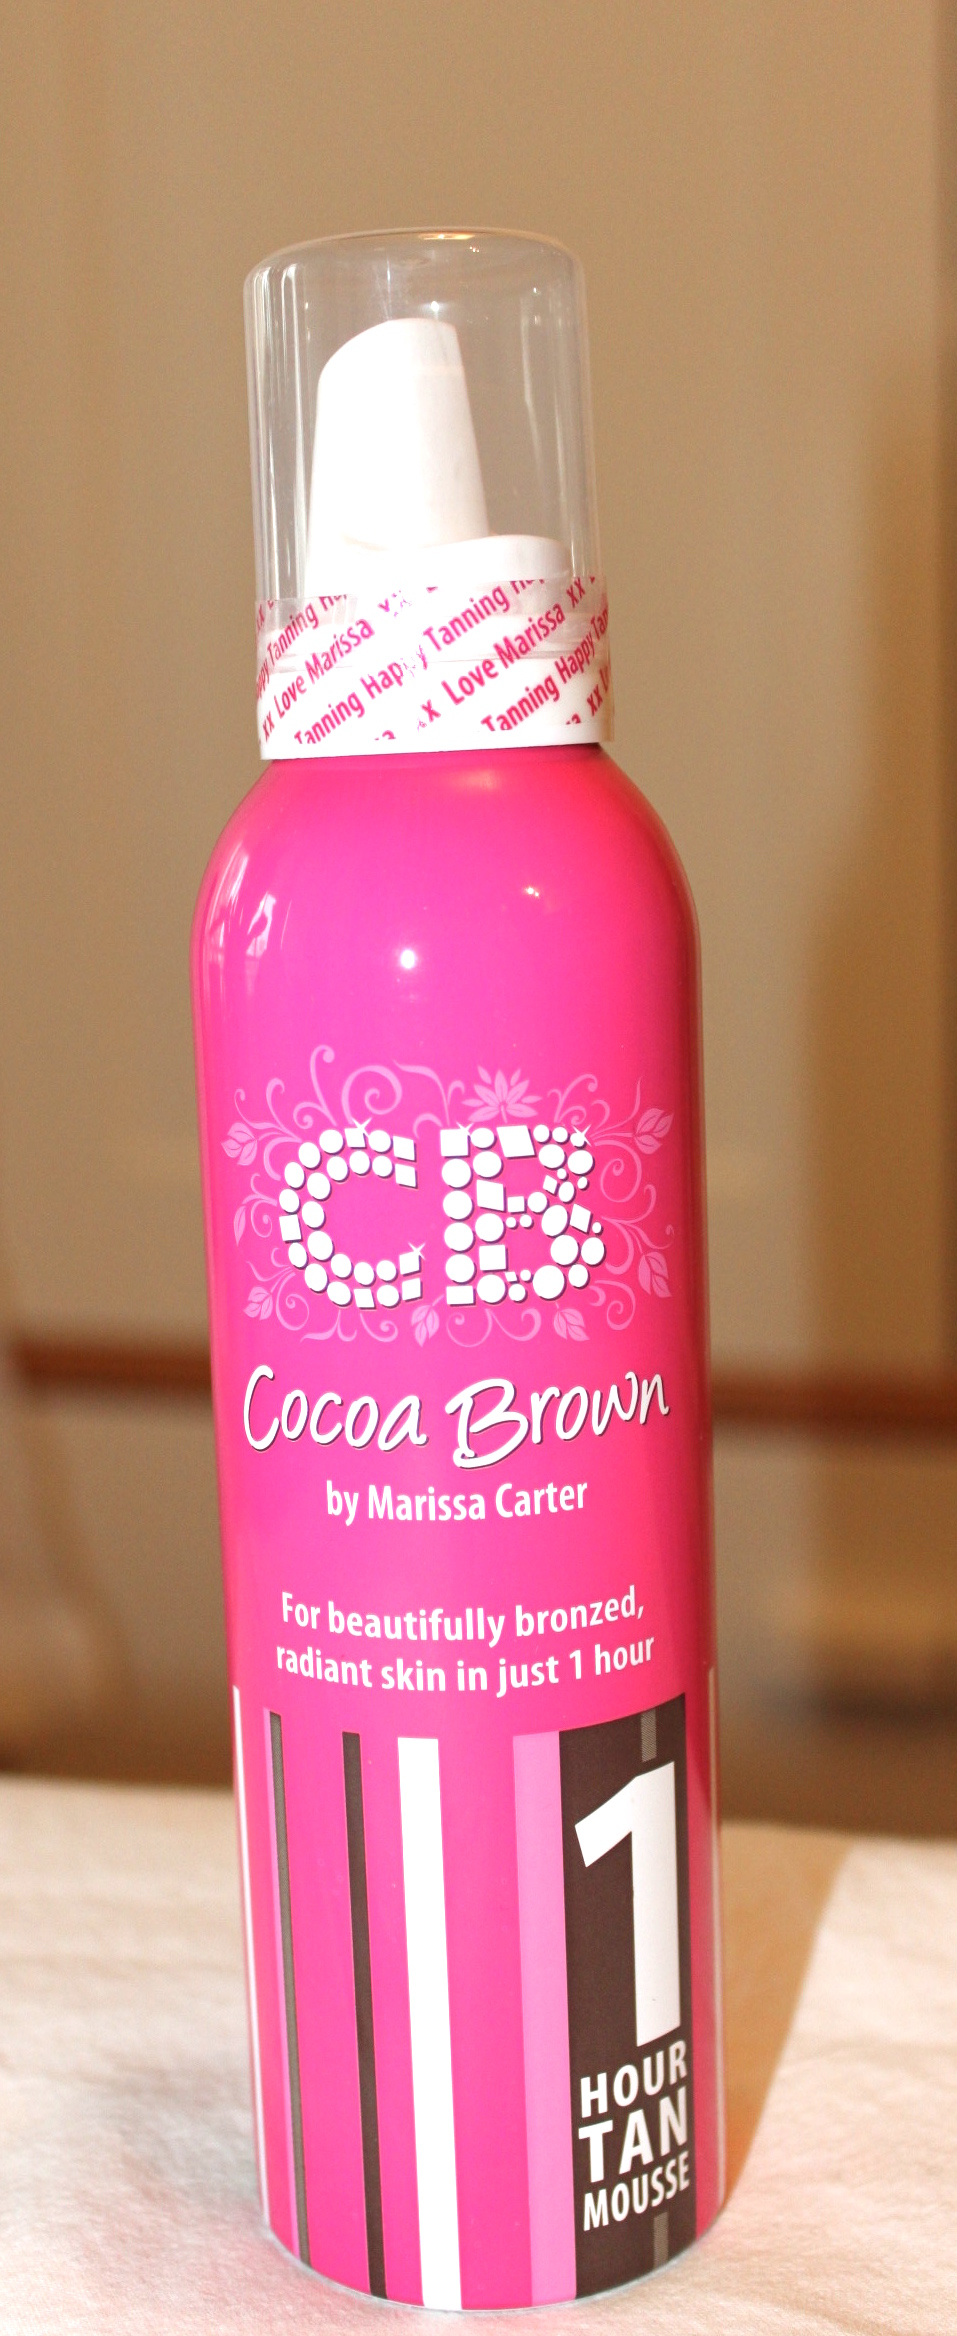 cocoa brown test